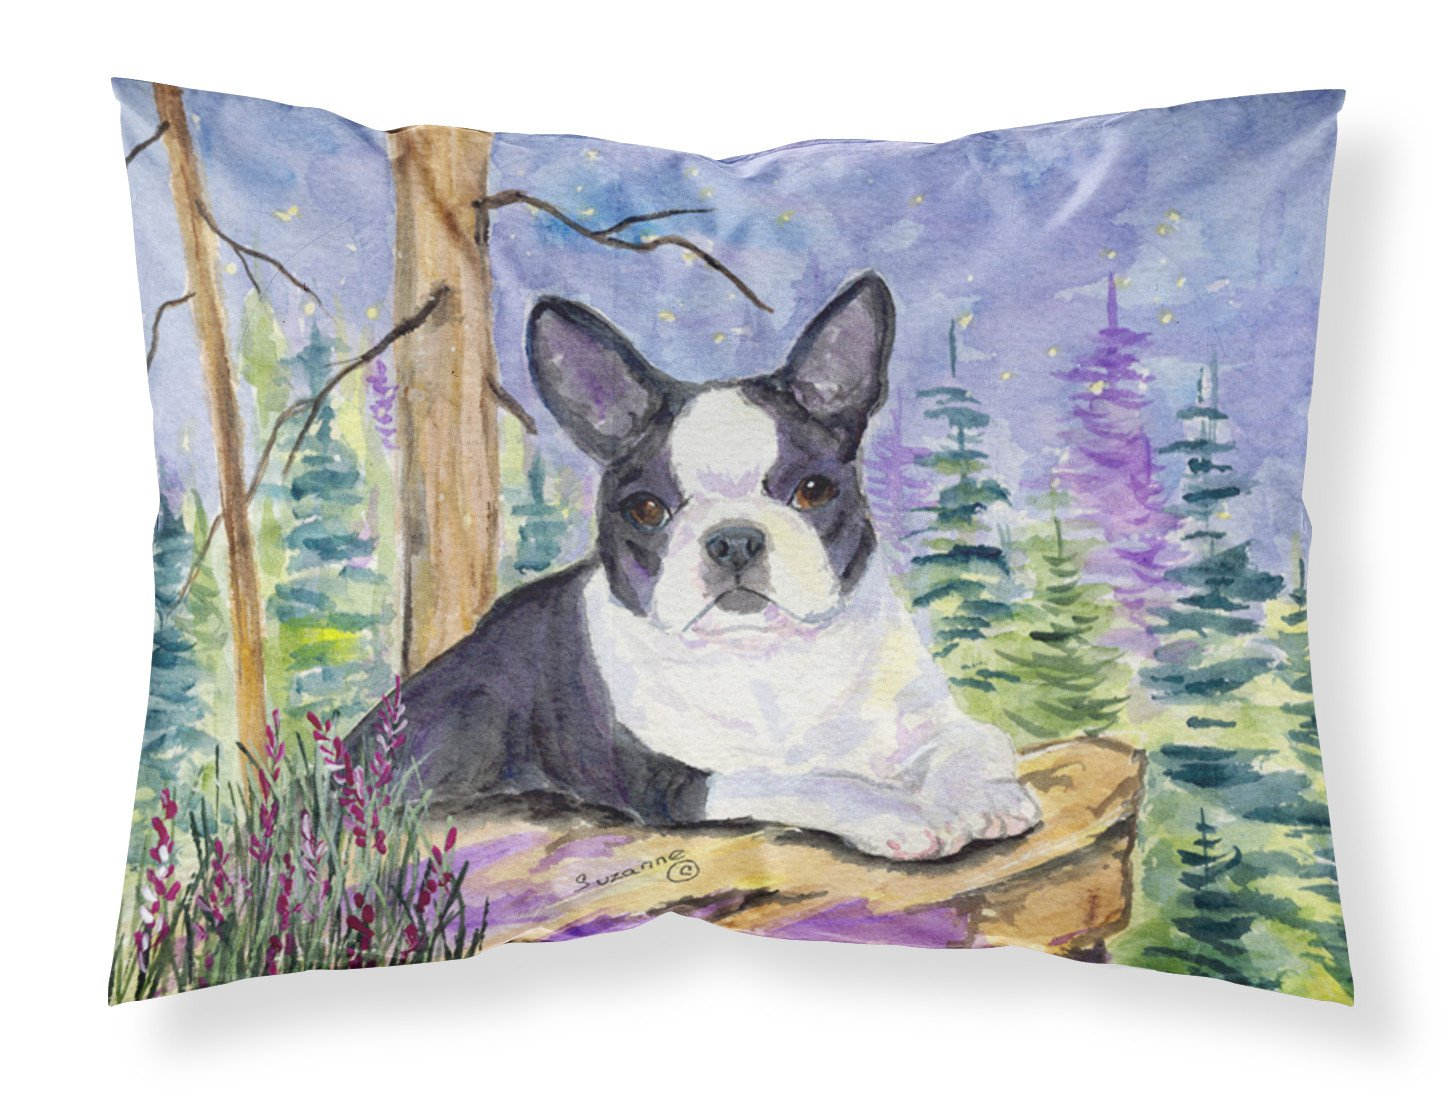 Boston Terrier Moisture wicking Fabric standard pillowcase by Caroline's Treasures